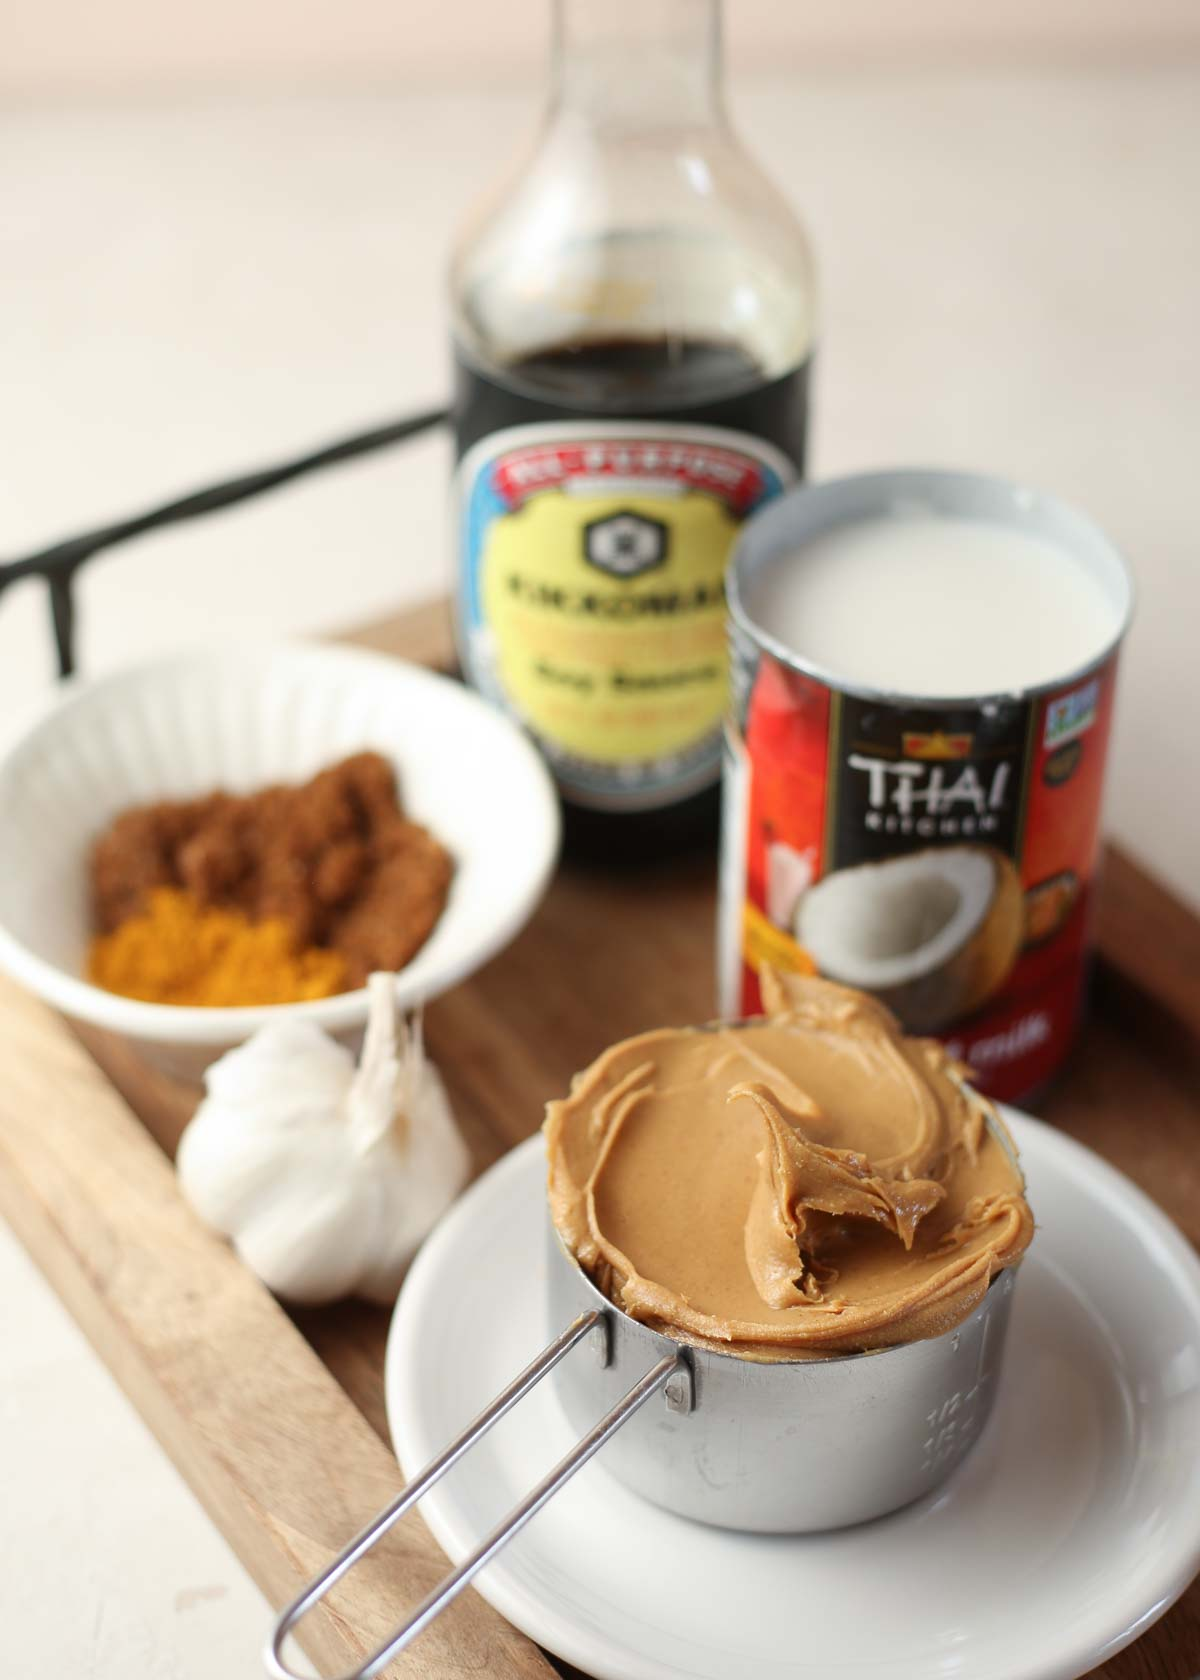 Our Very Favorite Homemade Peanut Sauce Recipe - Just six ingredients make up this rich and savory peanut sauce. Drizzle it over tofu, chicken, and broccoli or dip your favorite veggies in. Versatile and addicting!